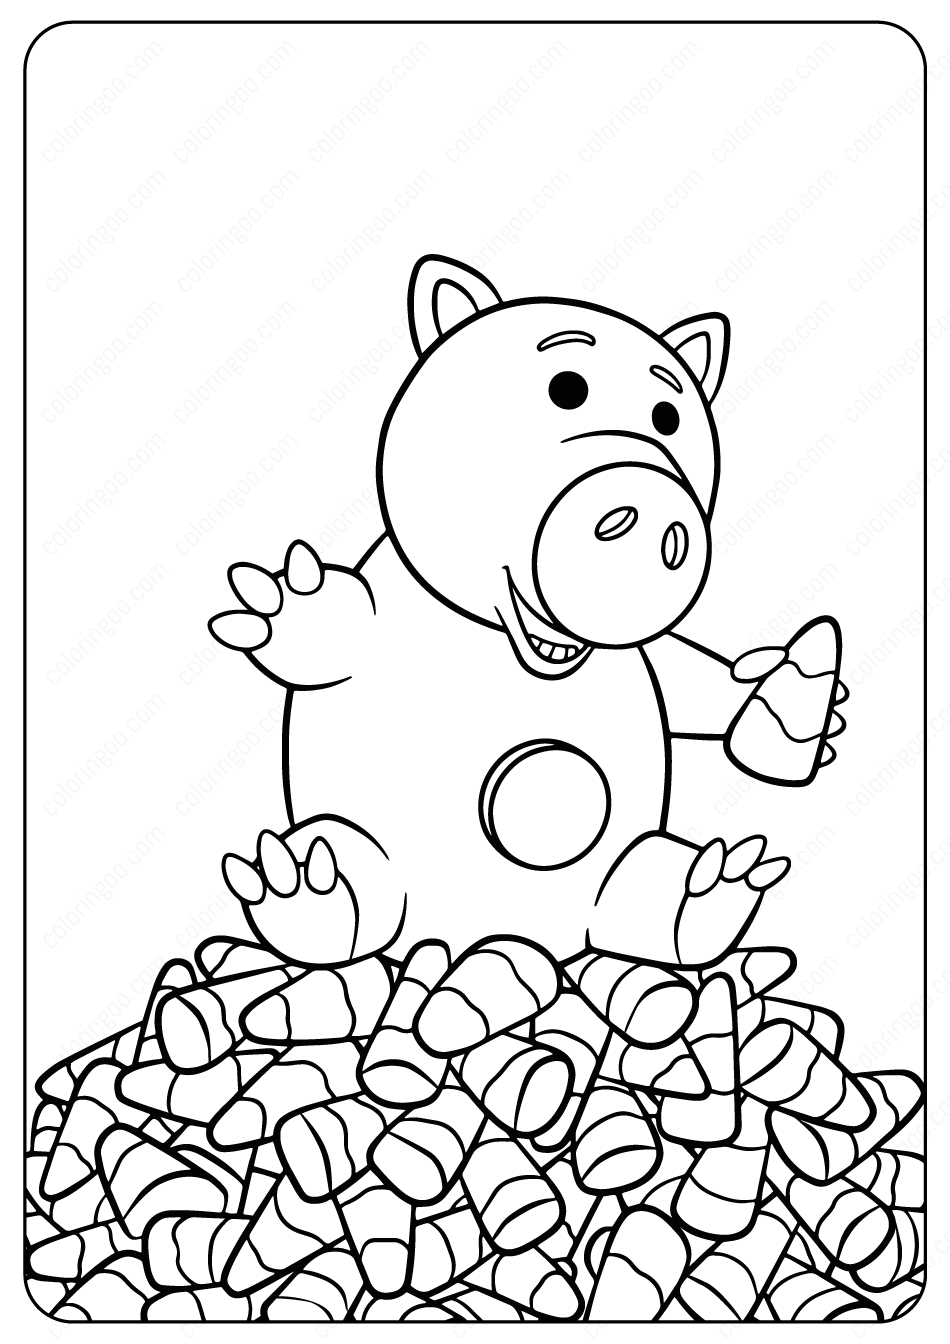 Hamm Halloween Coloring Pages Cartoon Coloring Pages Halloween Coloring Pages Coloring Pages